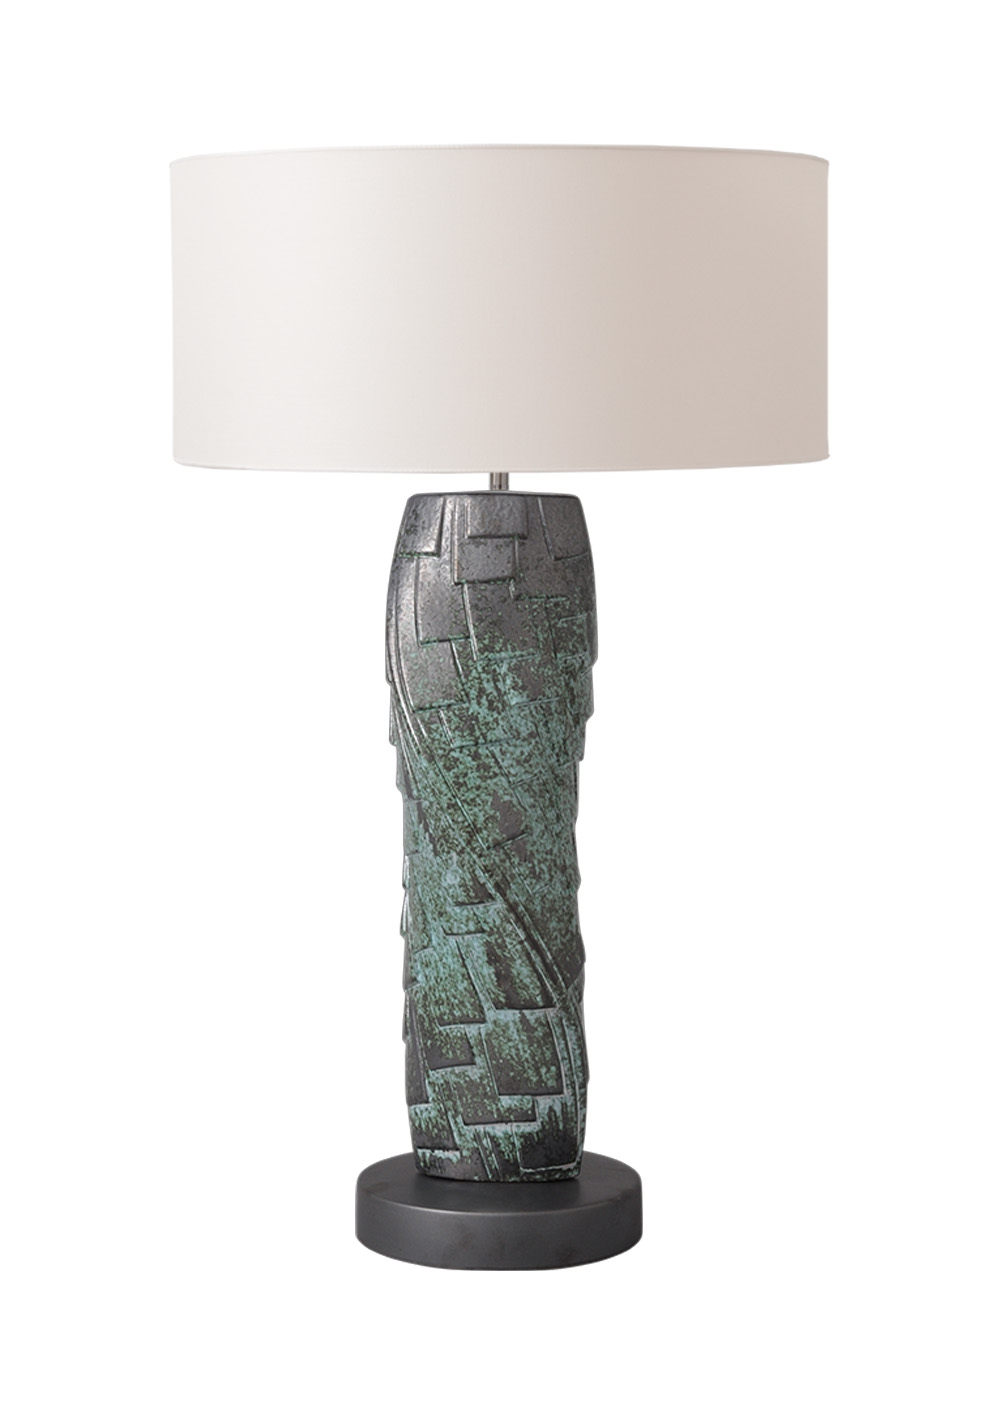 2Table lamp